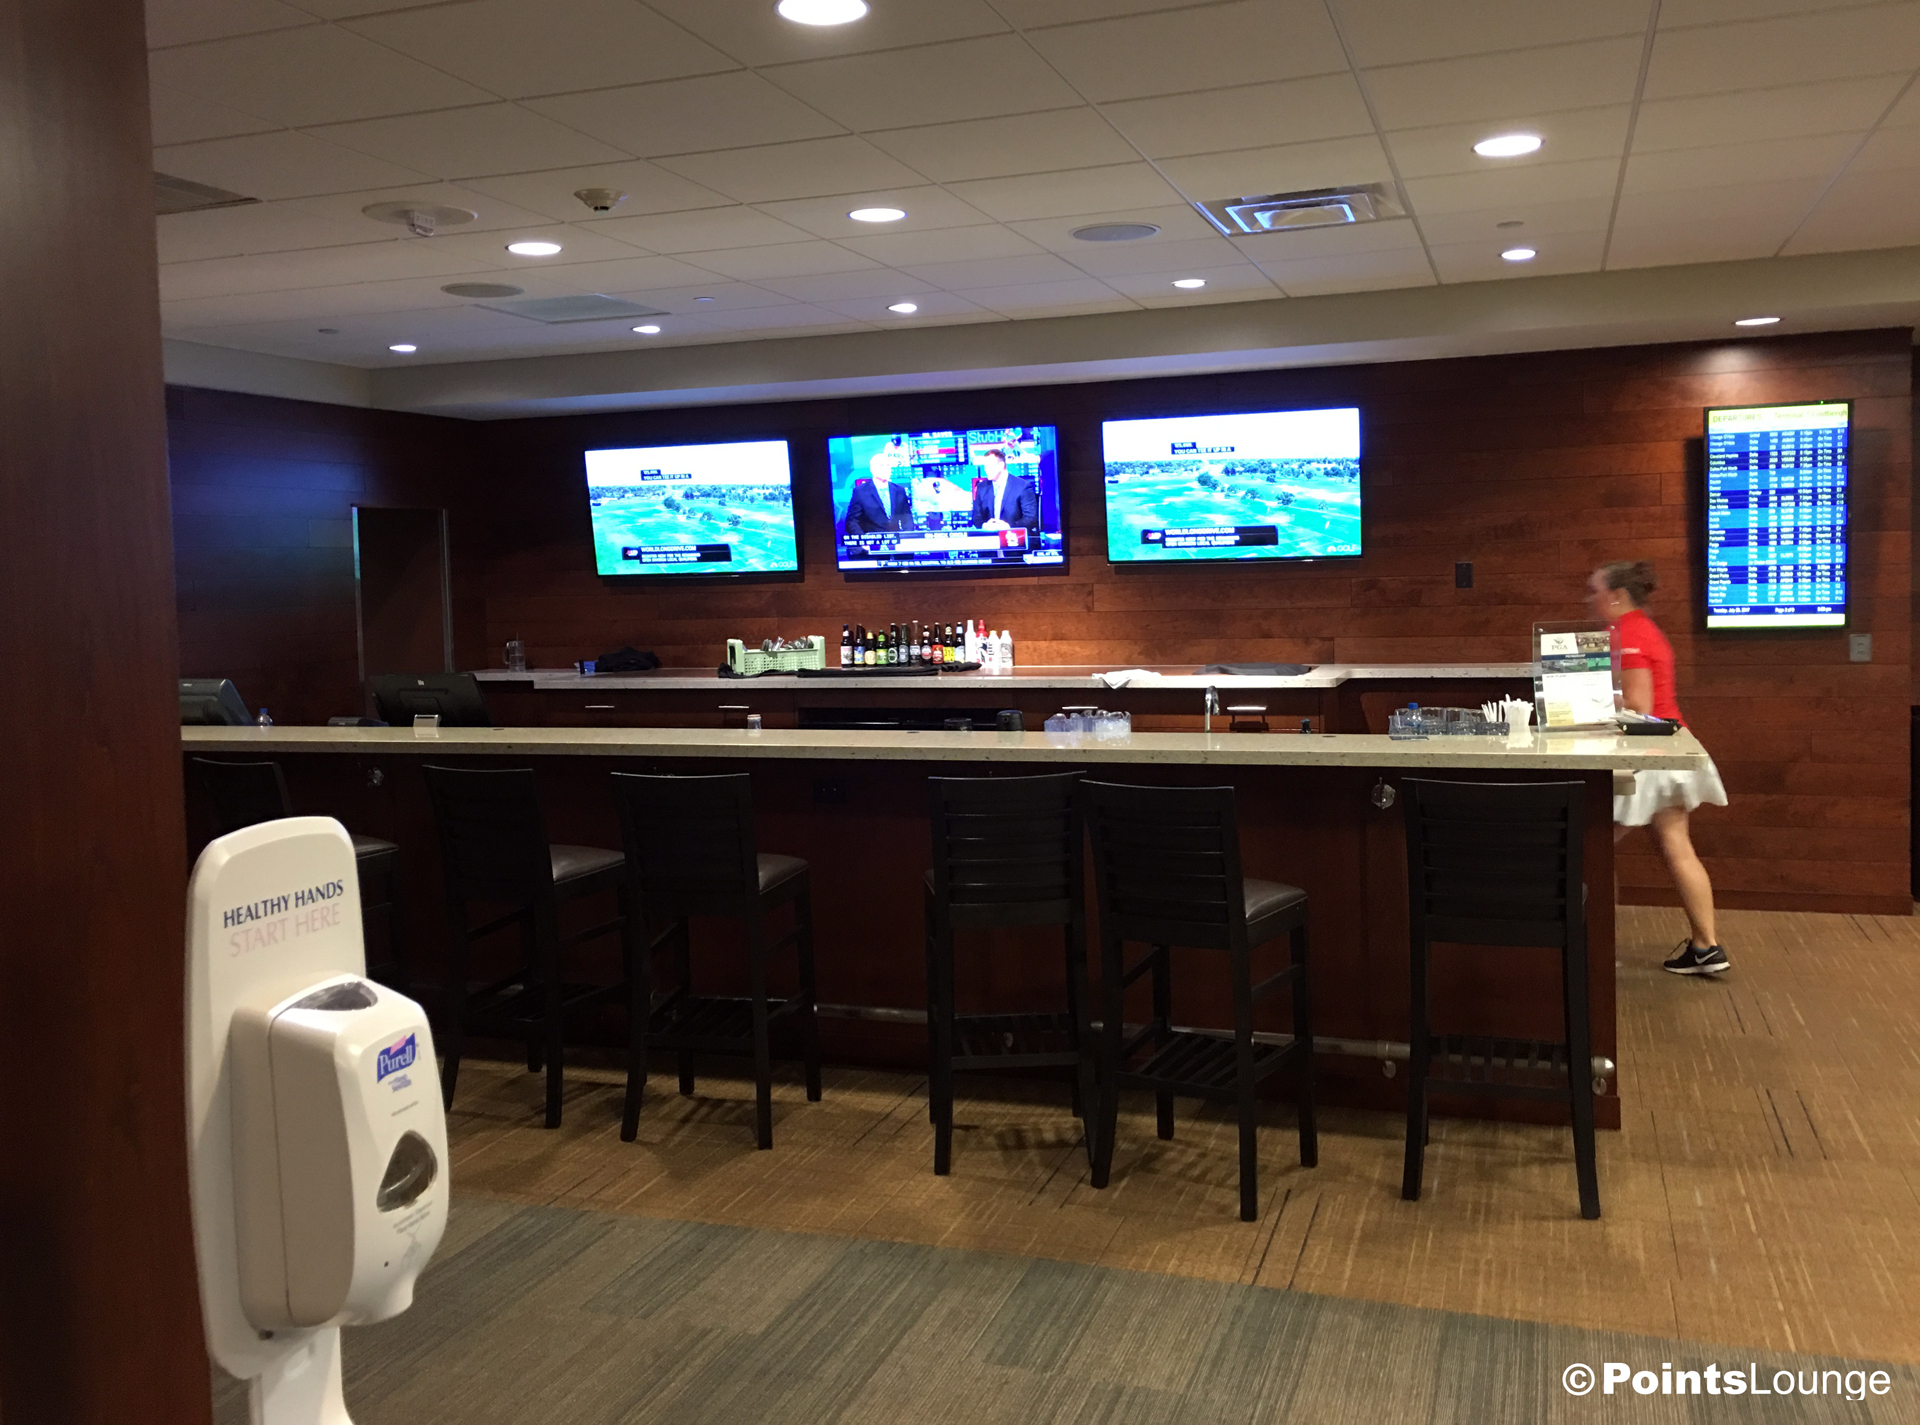 A view of the bar inside the PGA MSP golf-themed airport lounge at the Minneapolis-St. Paul International Airport. One of the ways the lounge can be accessed is with Priority Pass membership. (Click for a larger image.)